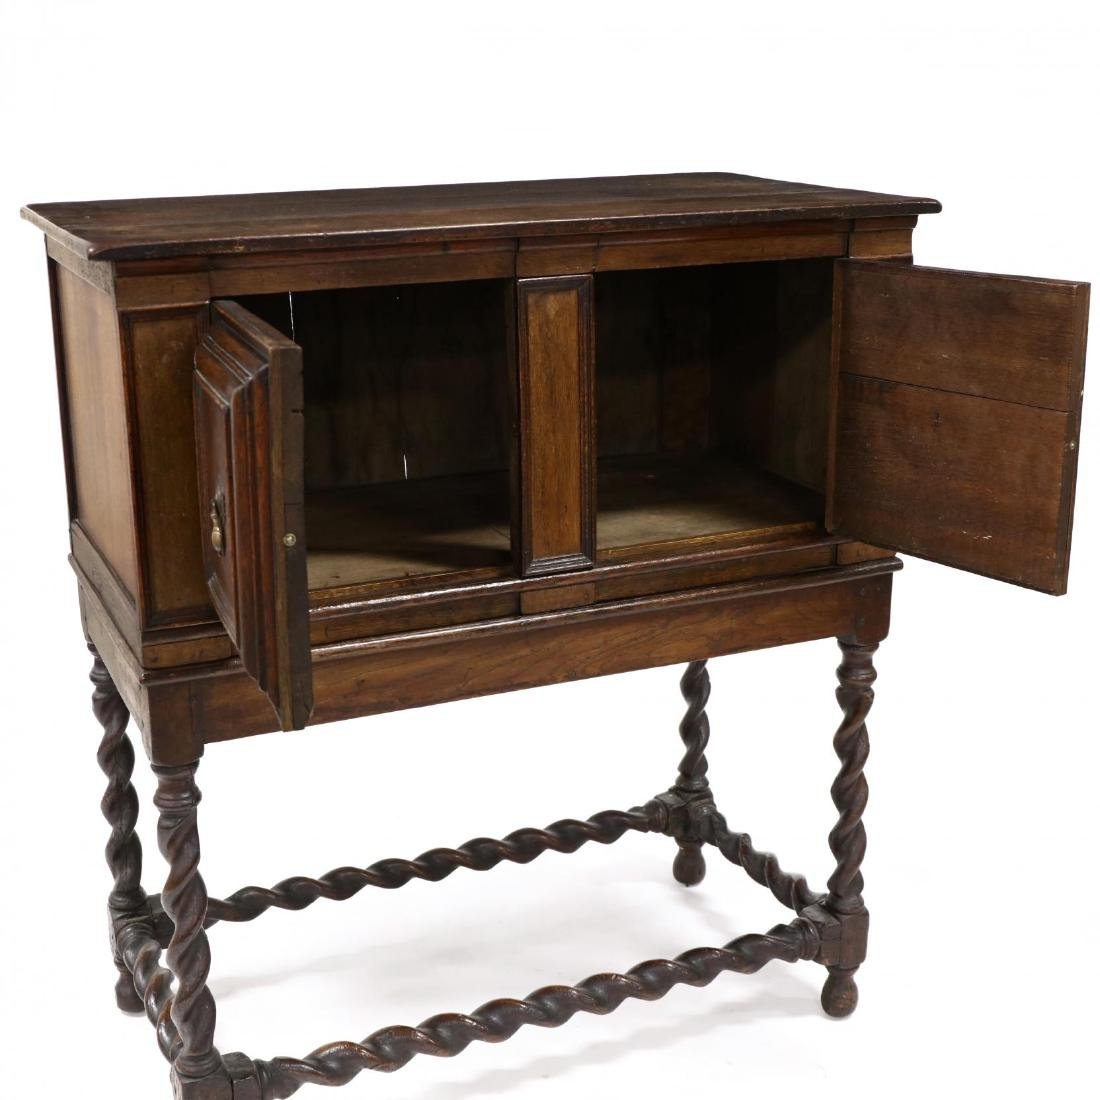 William and Mary Style Inlaid Cabinet on Stand - 2